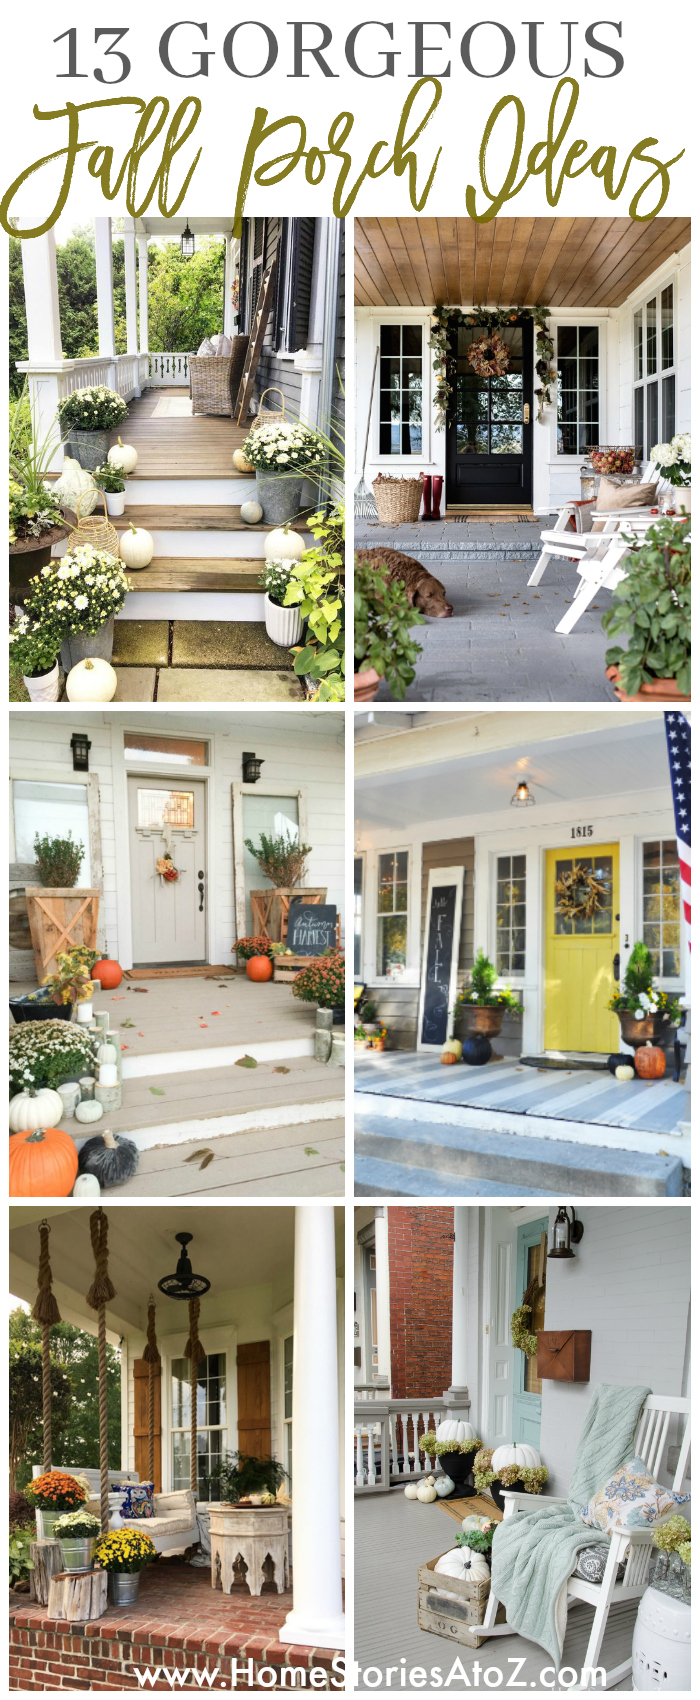 13 Gorgeous Fall Front Porch Ideas